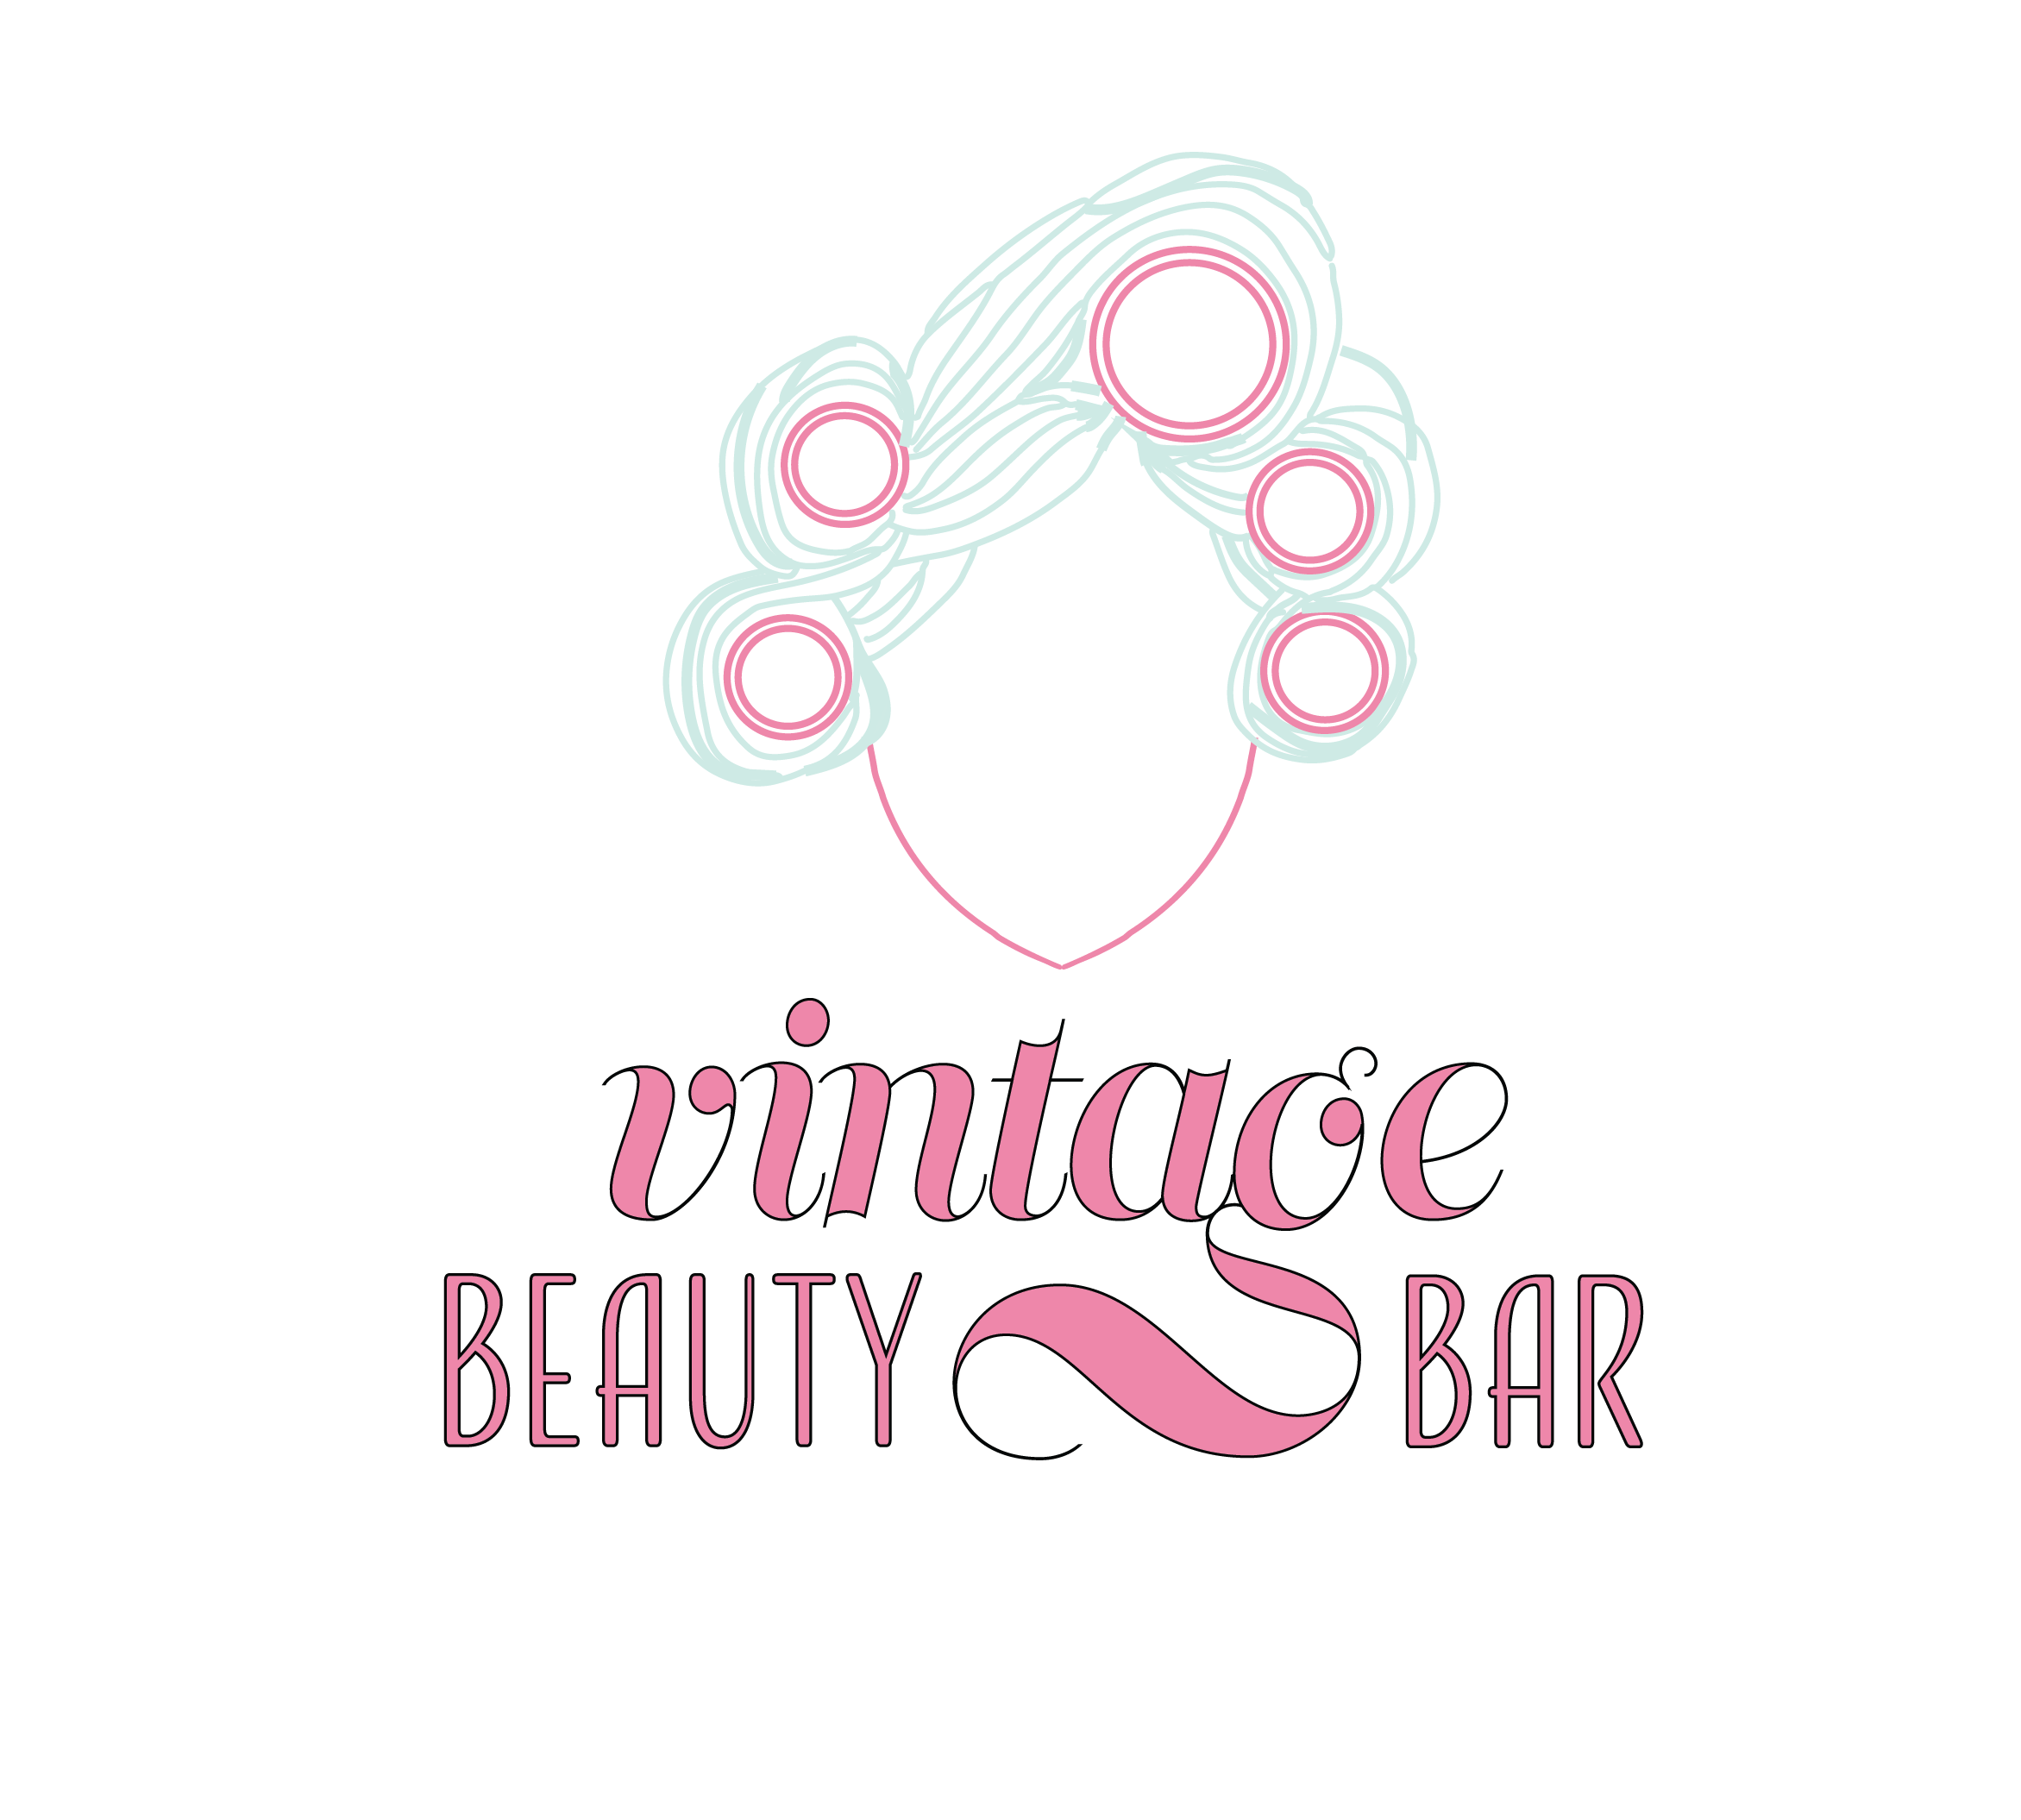 Vintage Beauty Salon logo-05.png